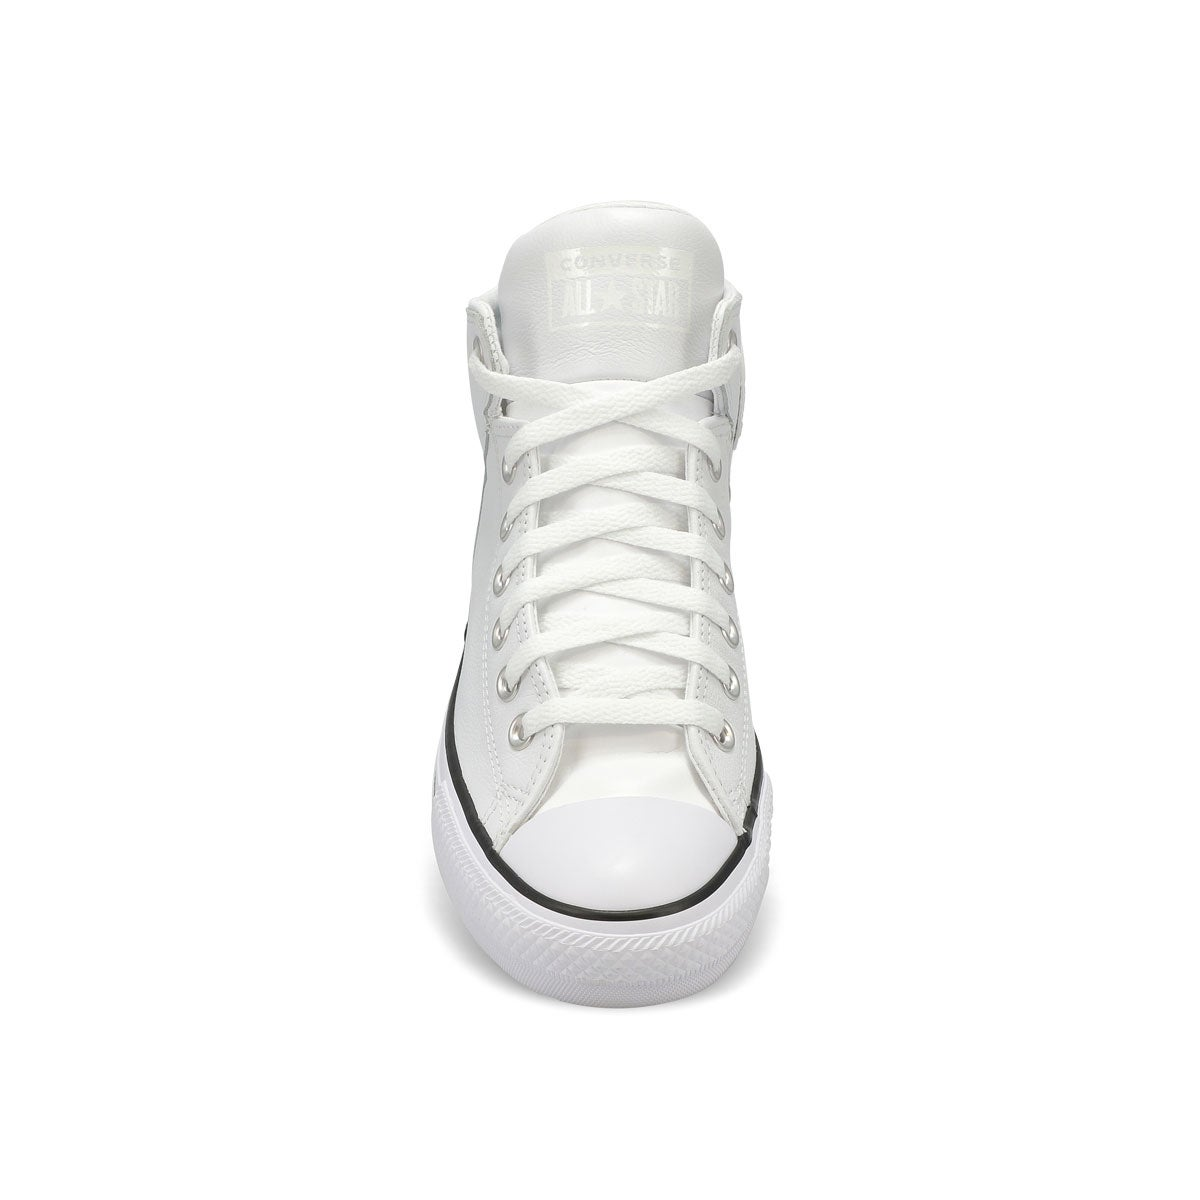 Men's All Star High Street hi Top Leather Sneaker